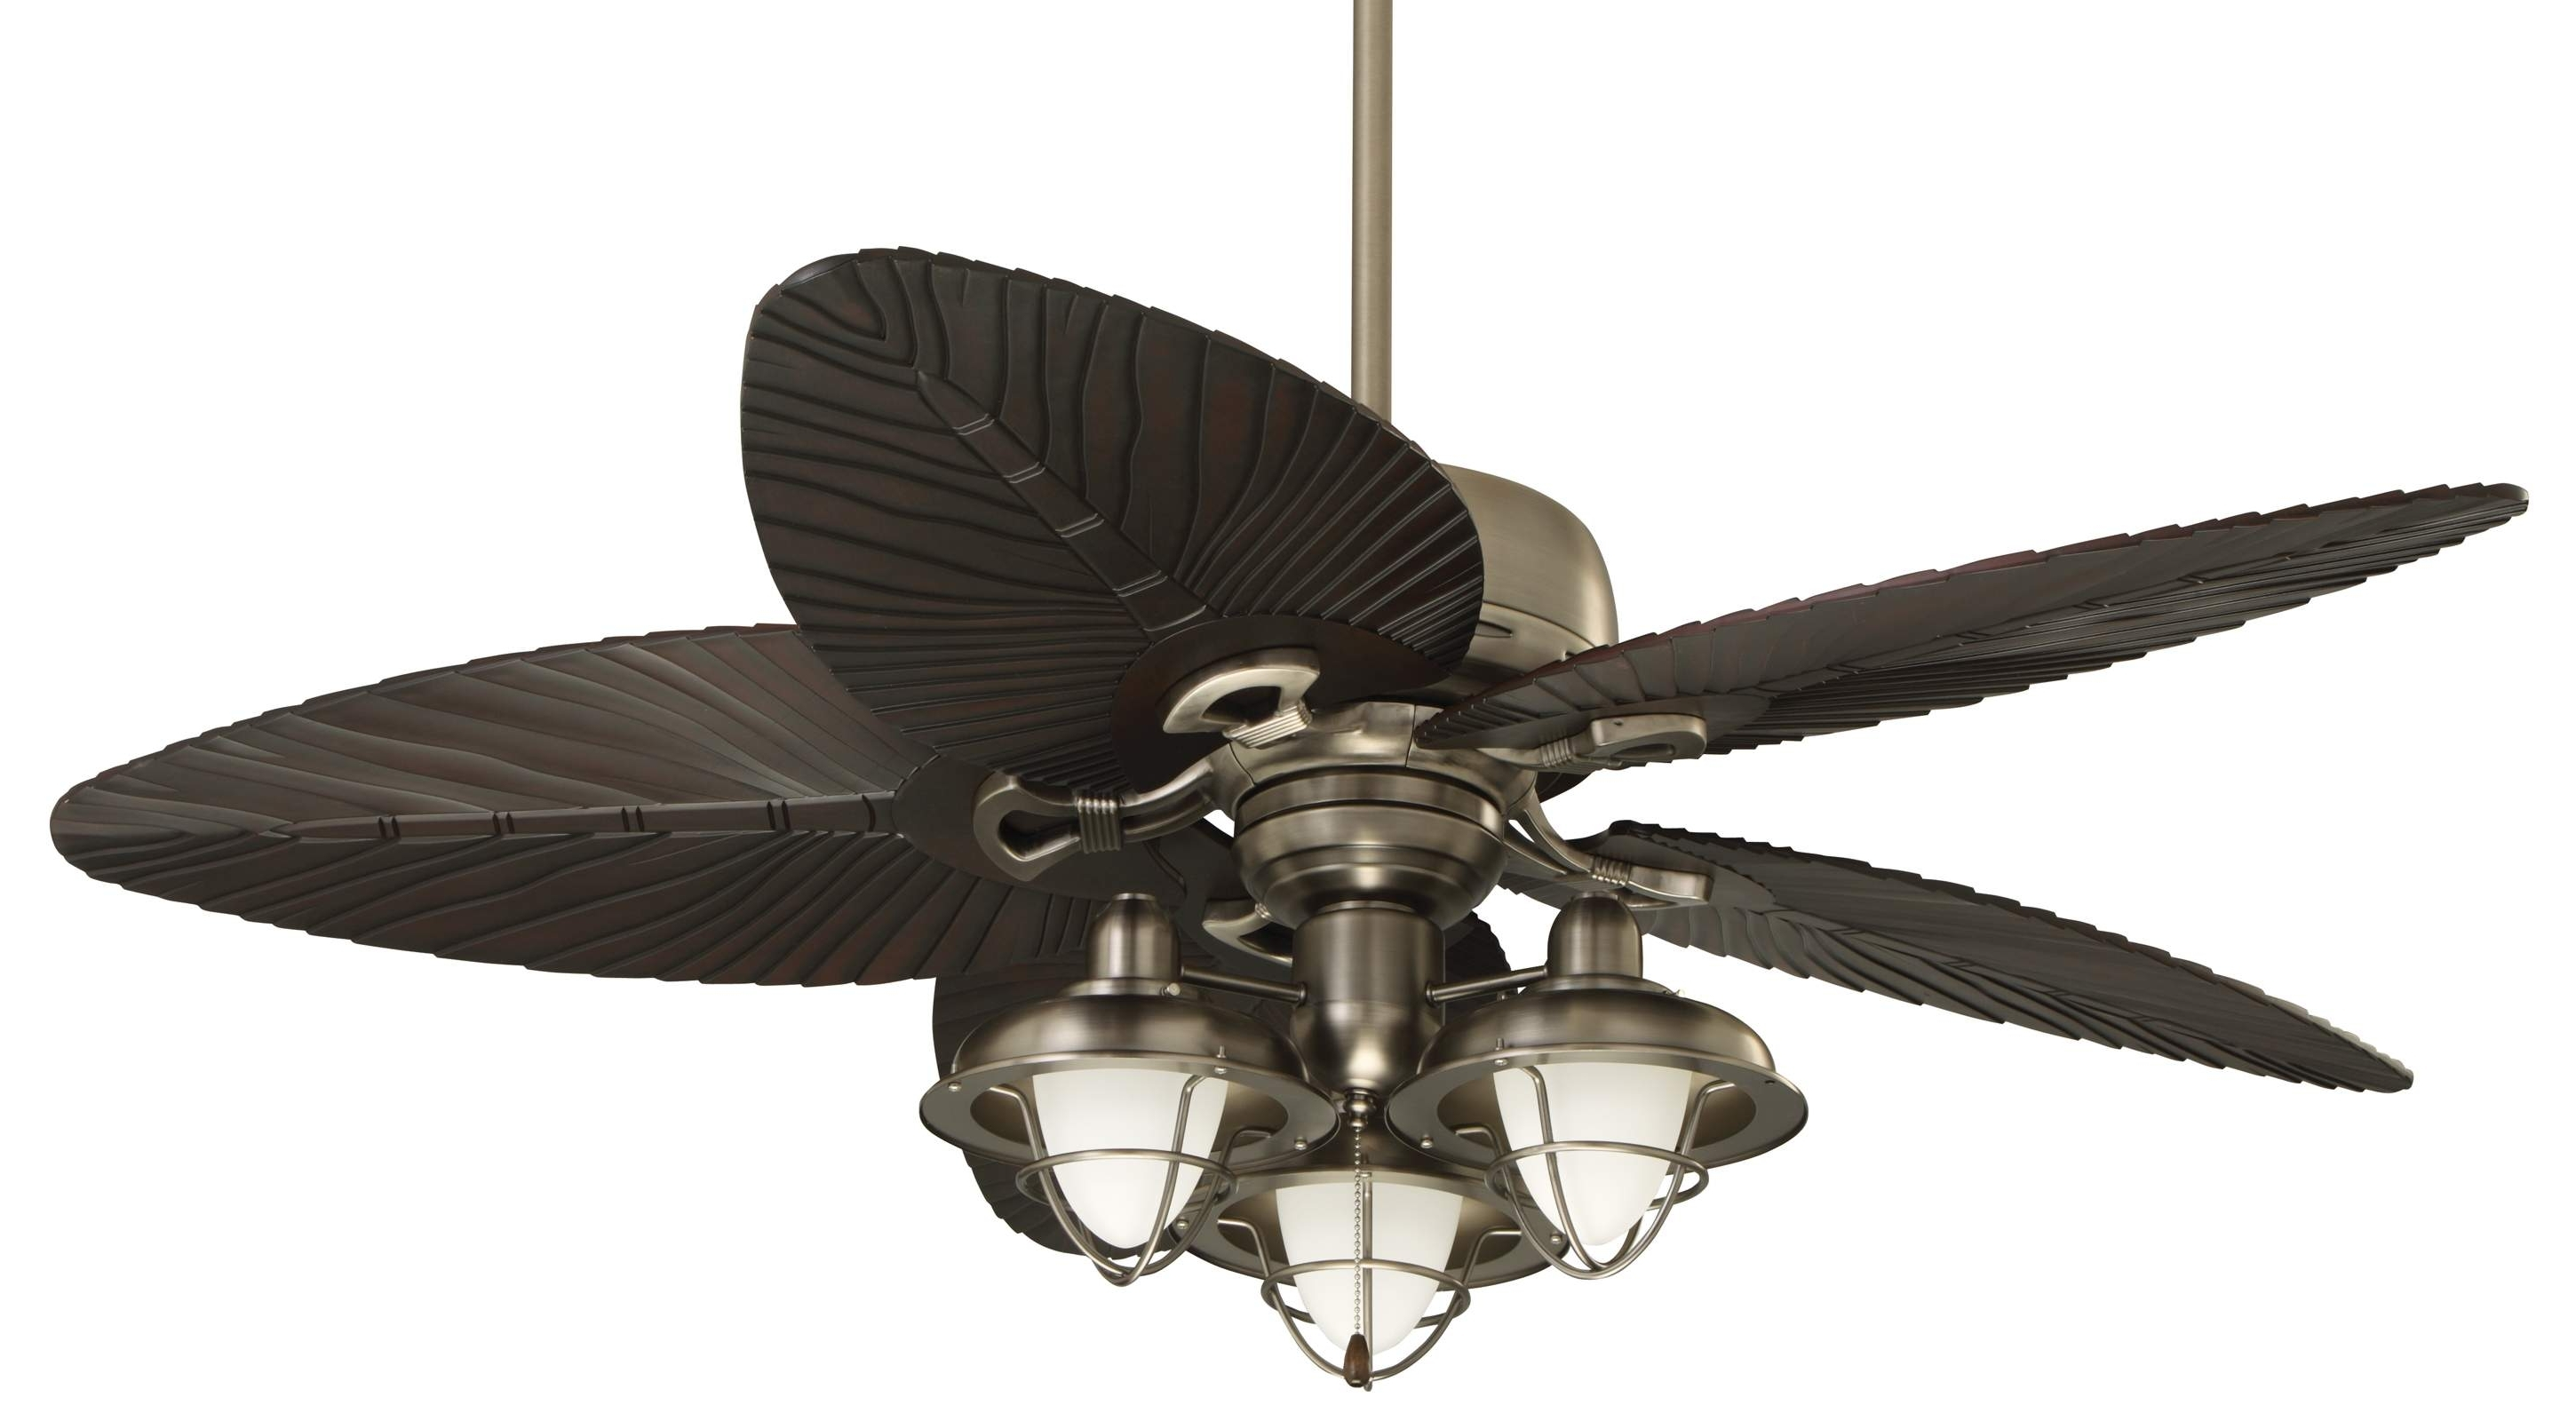 2018 Decor: Bring An Island Look Into Your Home With Cool Ceiling Fan Throughout Outdoor Ceiling Fans With Leaf Blades (Gallery 14 of 20)